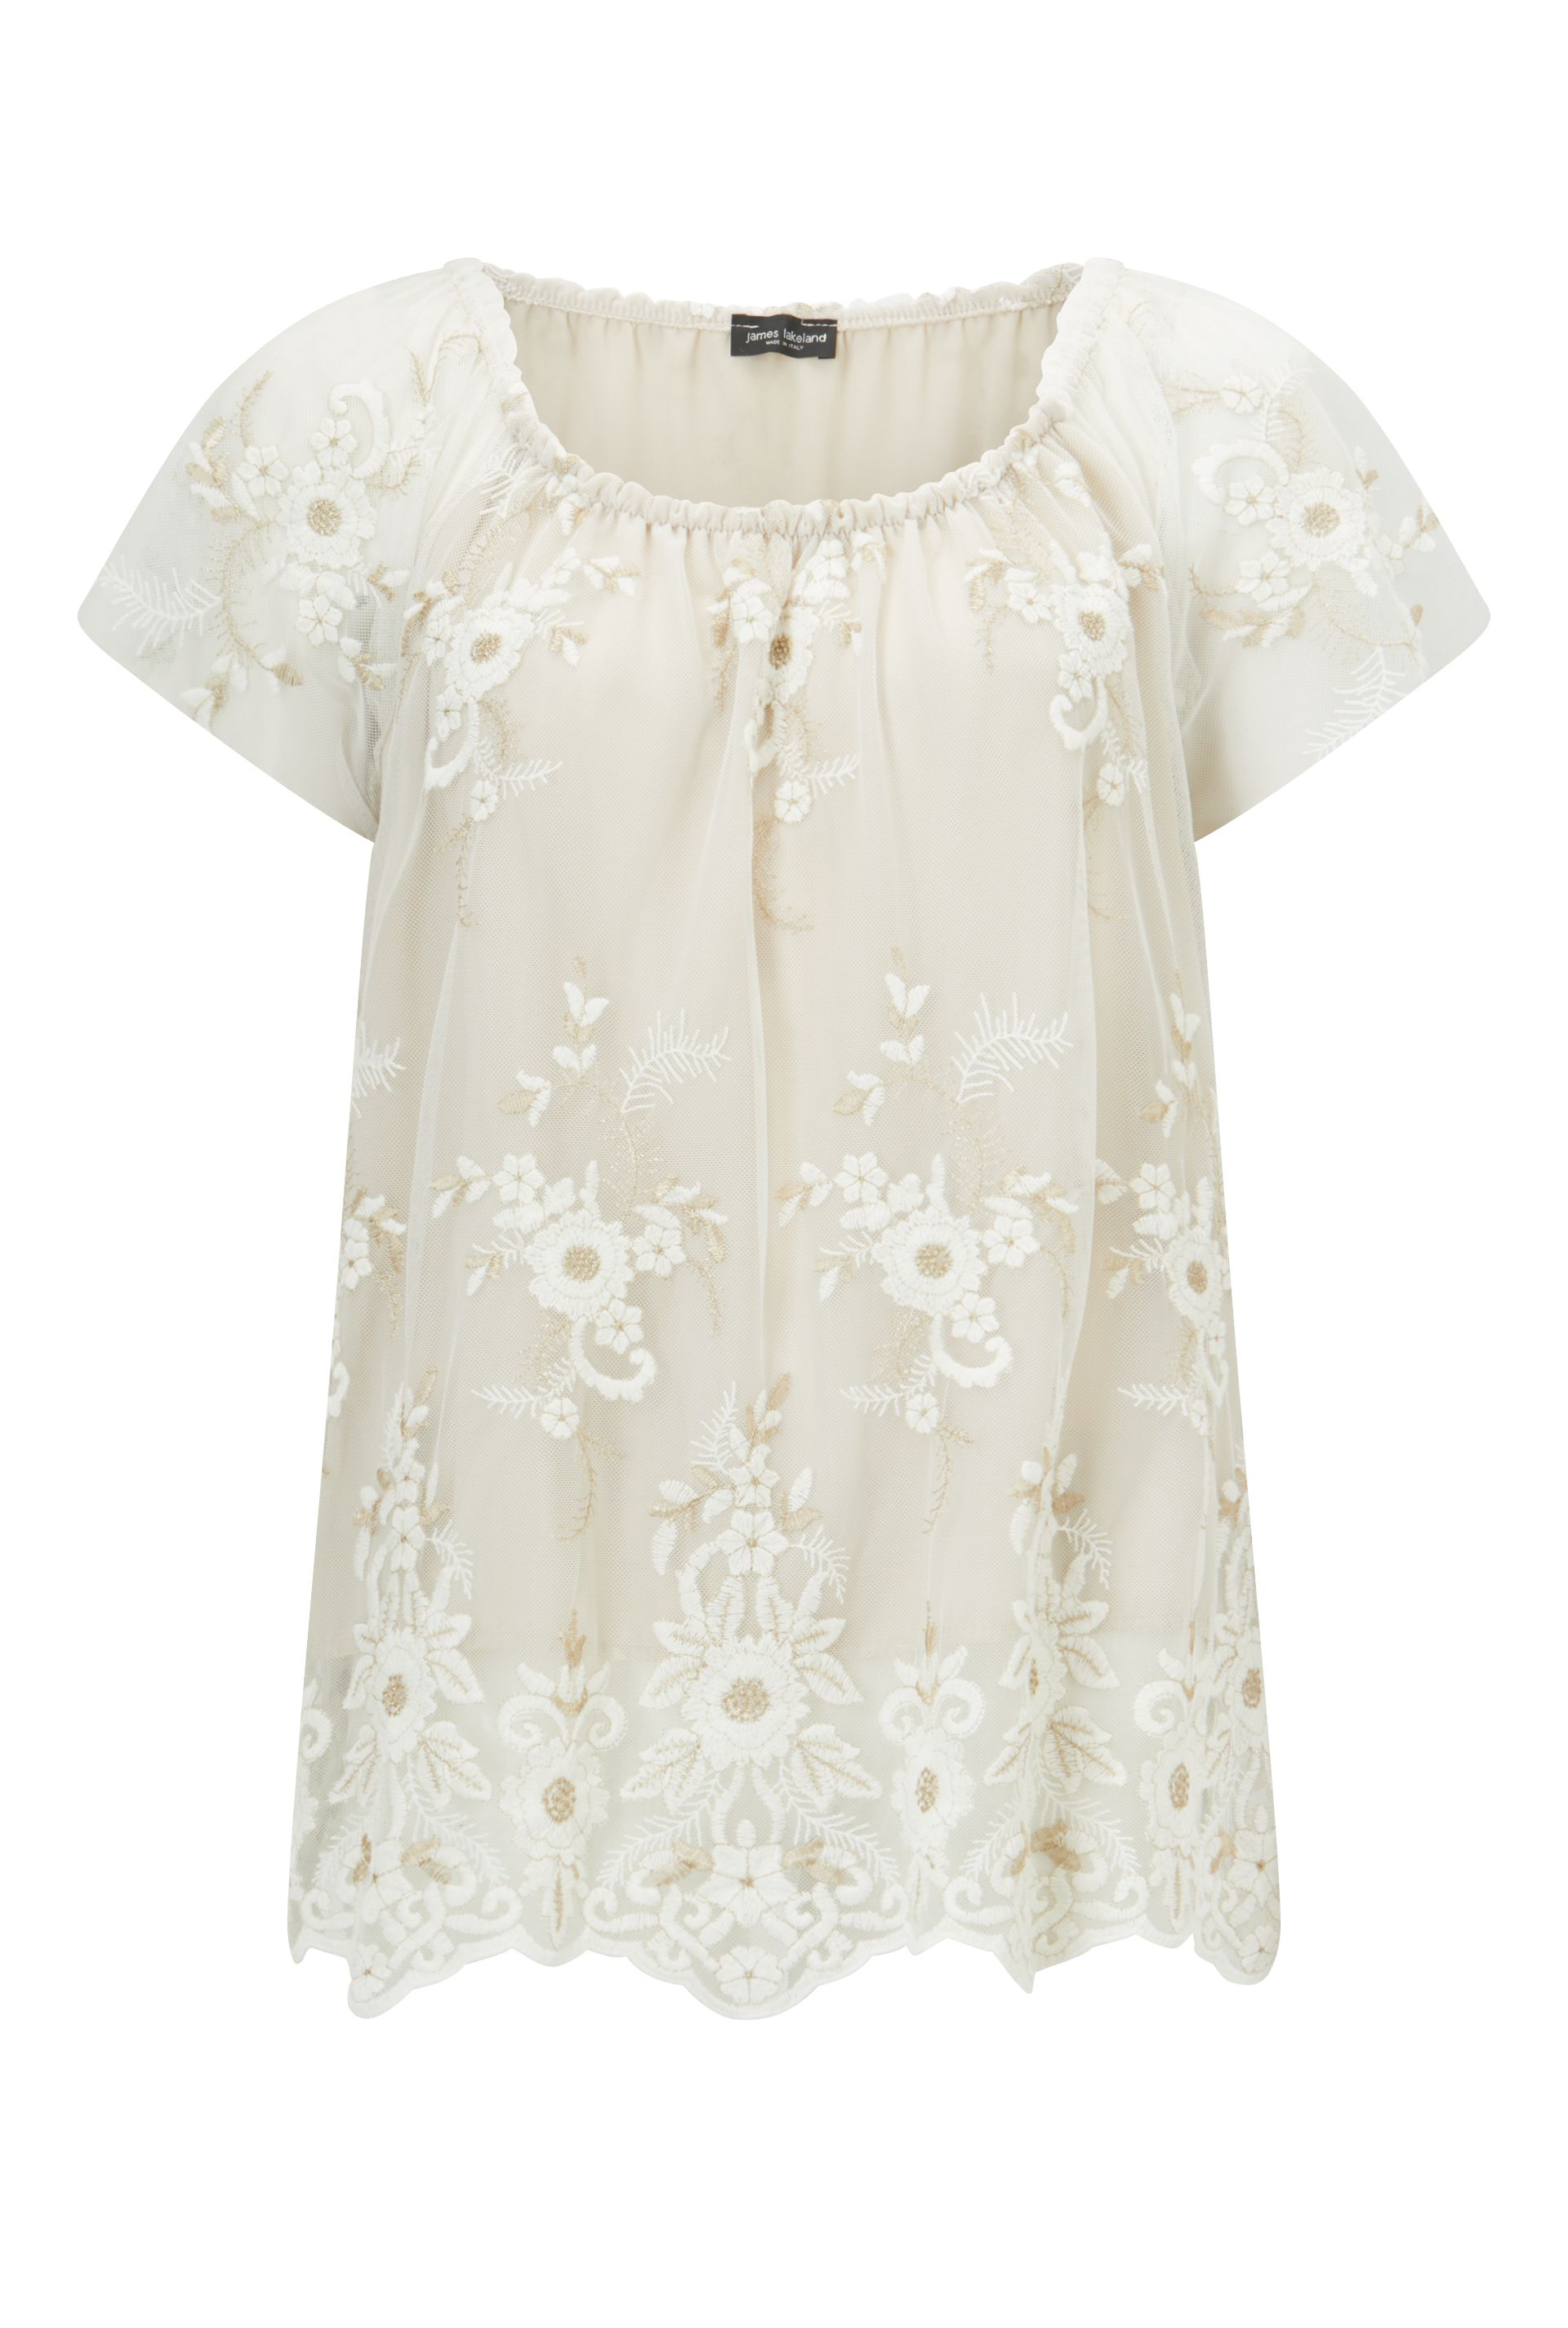 James Lakeland Embroidered Lace Top, Cream